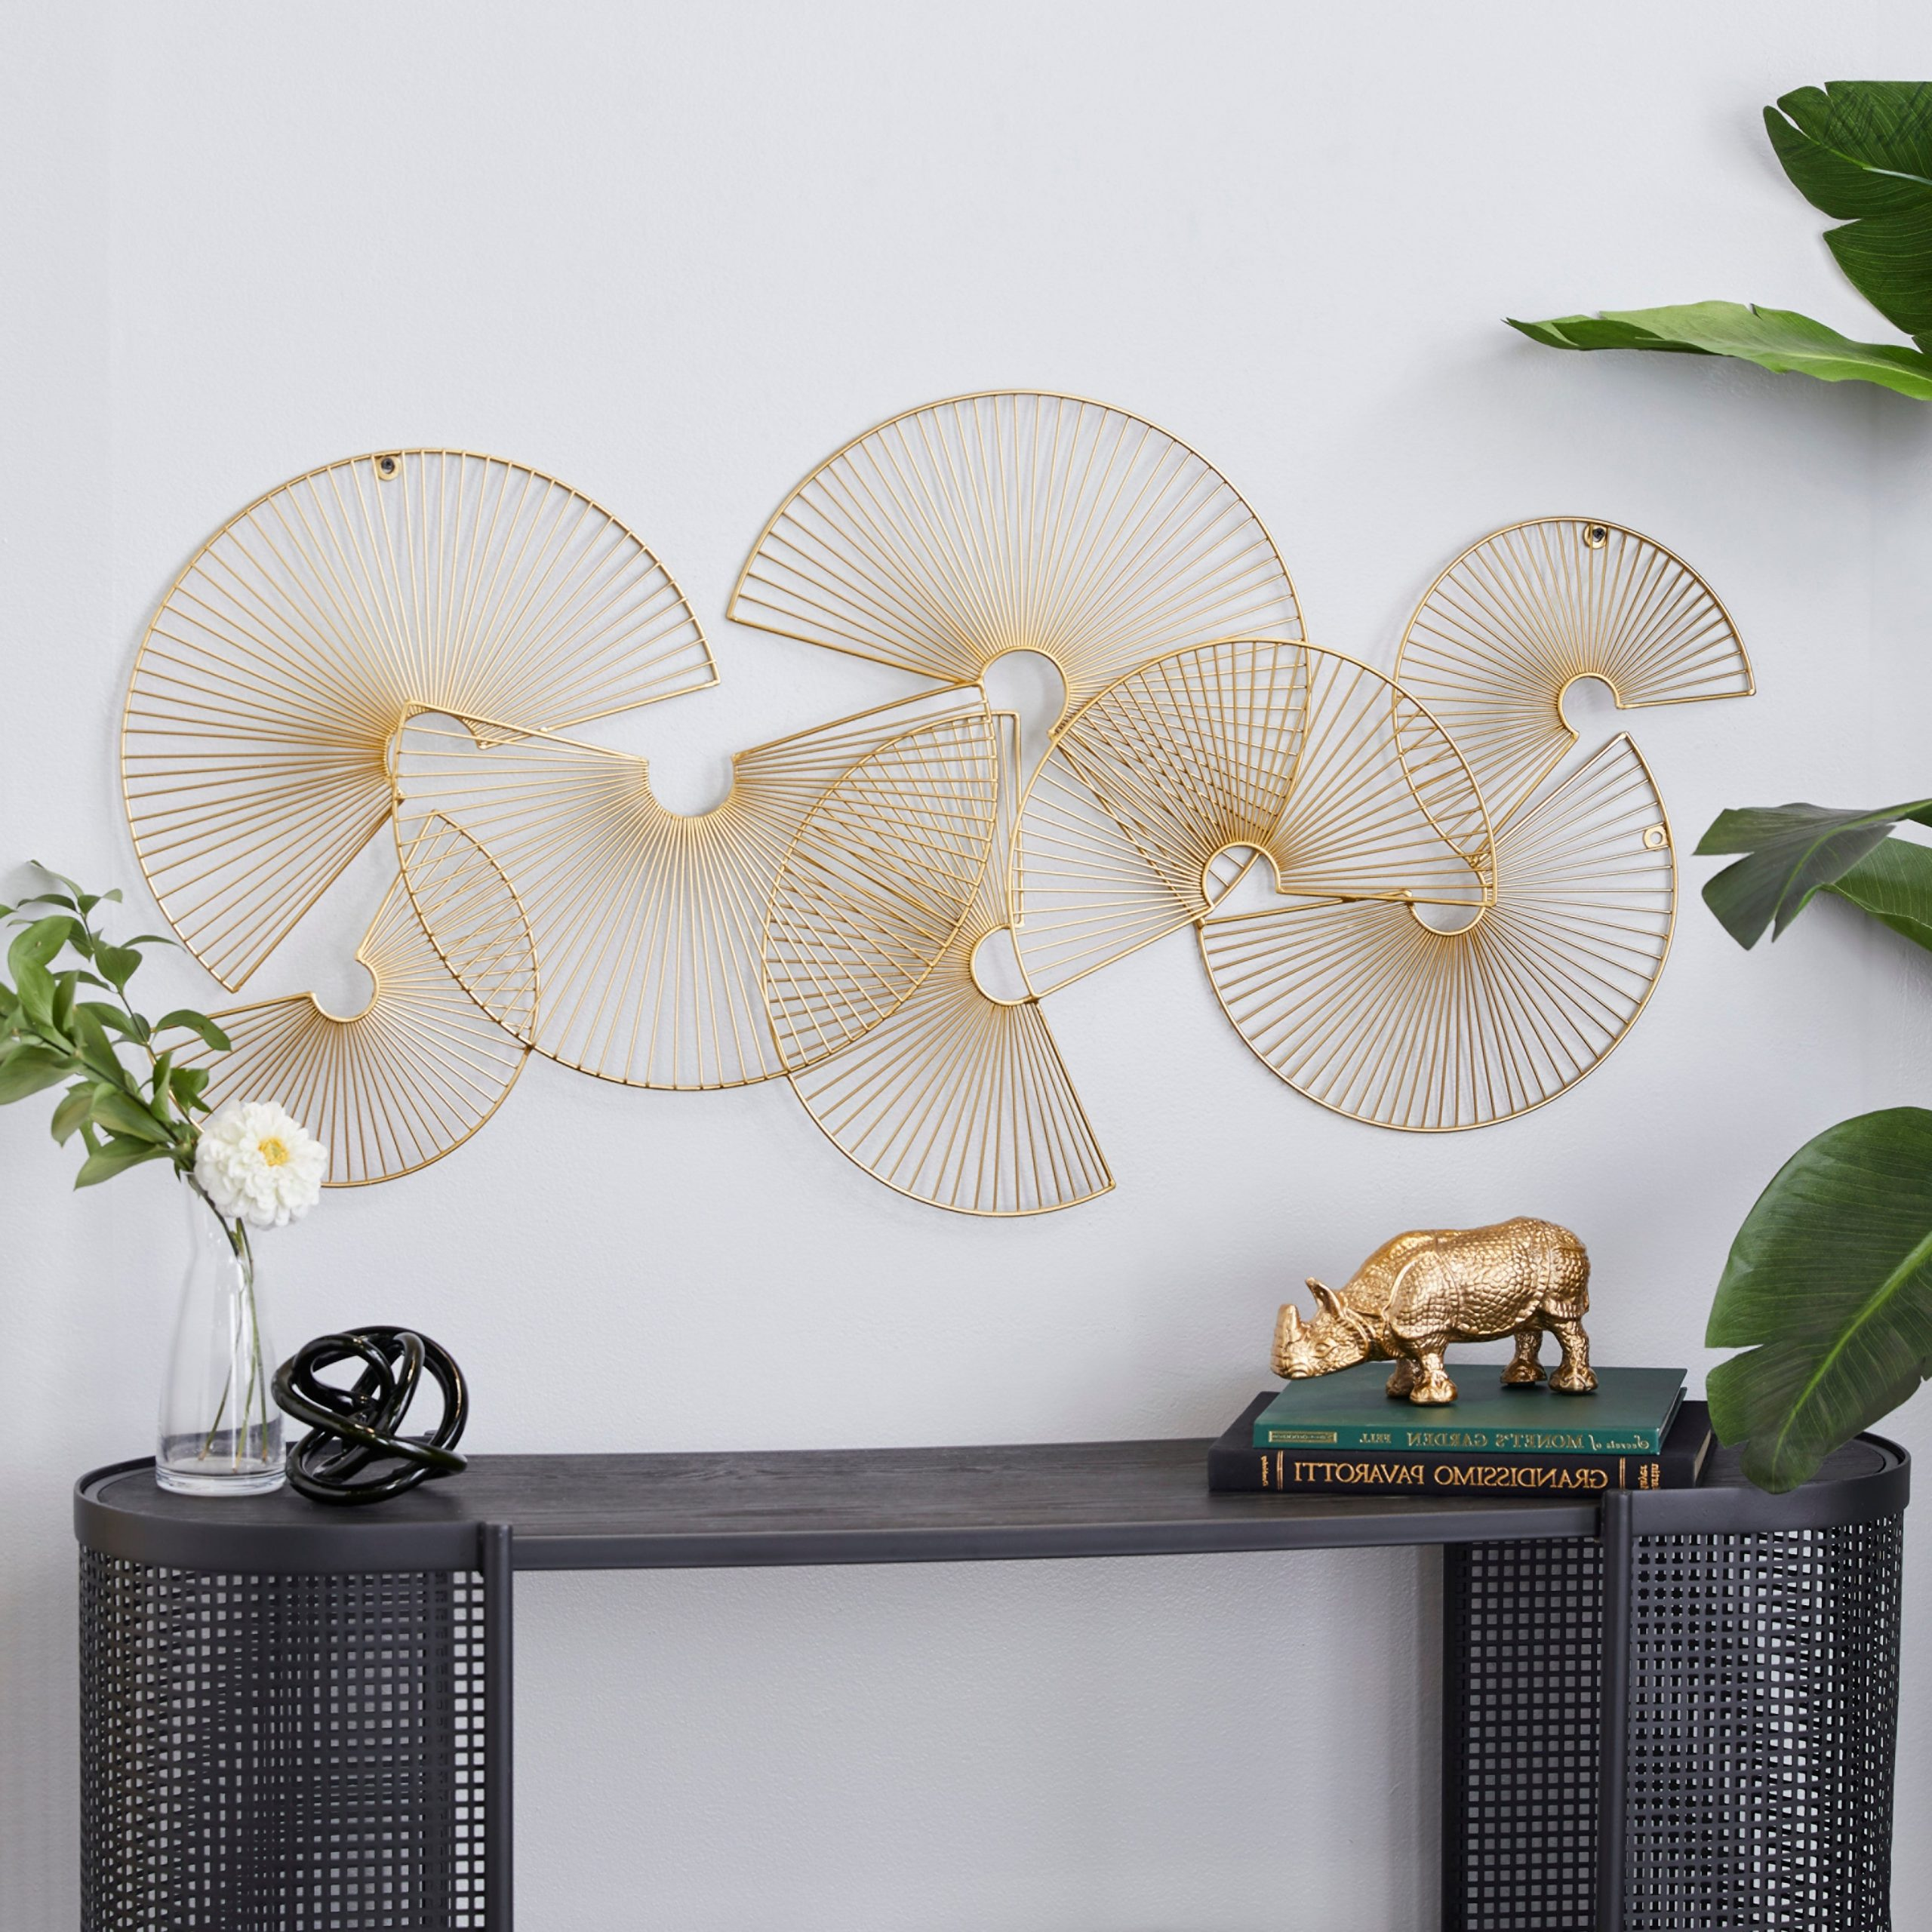 Metal Wall Décor By Cosmoliving Inside 2019 Cosmolivingcosmopolitan Gold Metal Wall Decor 45 X 22 In – 1 X 18 X (View 5 of 20)